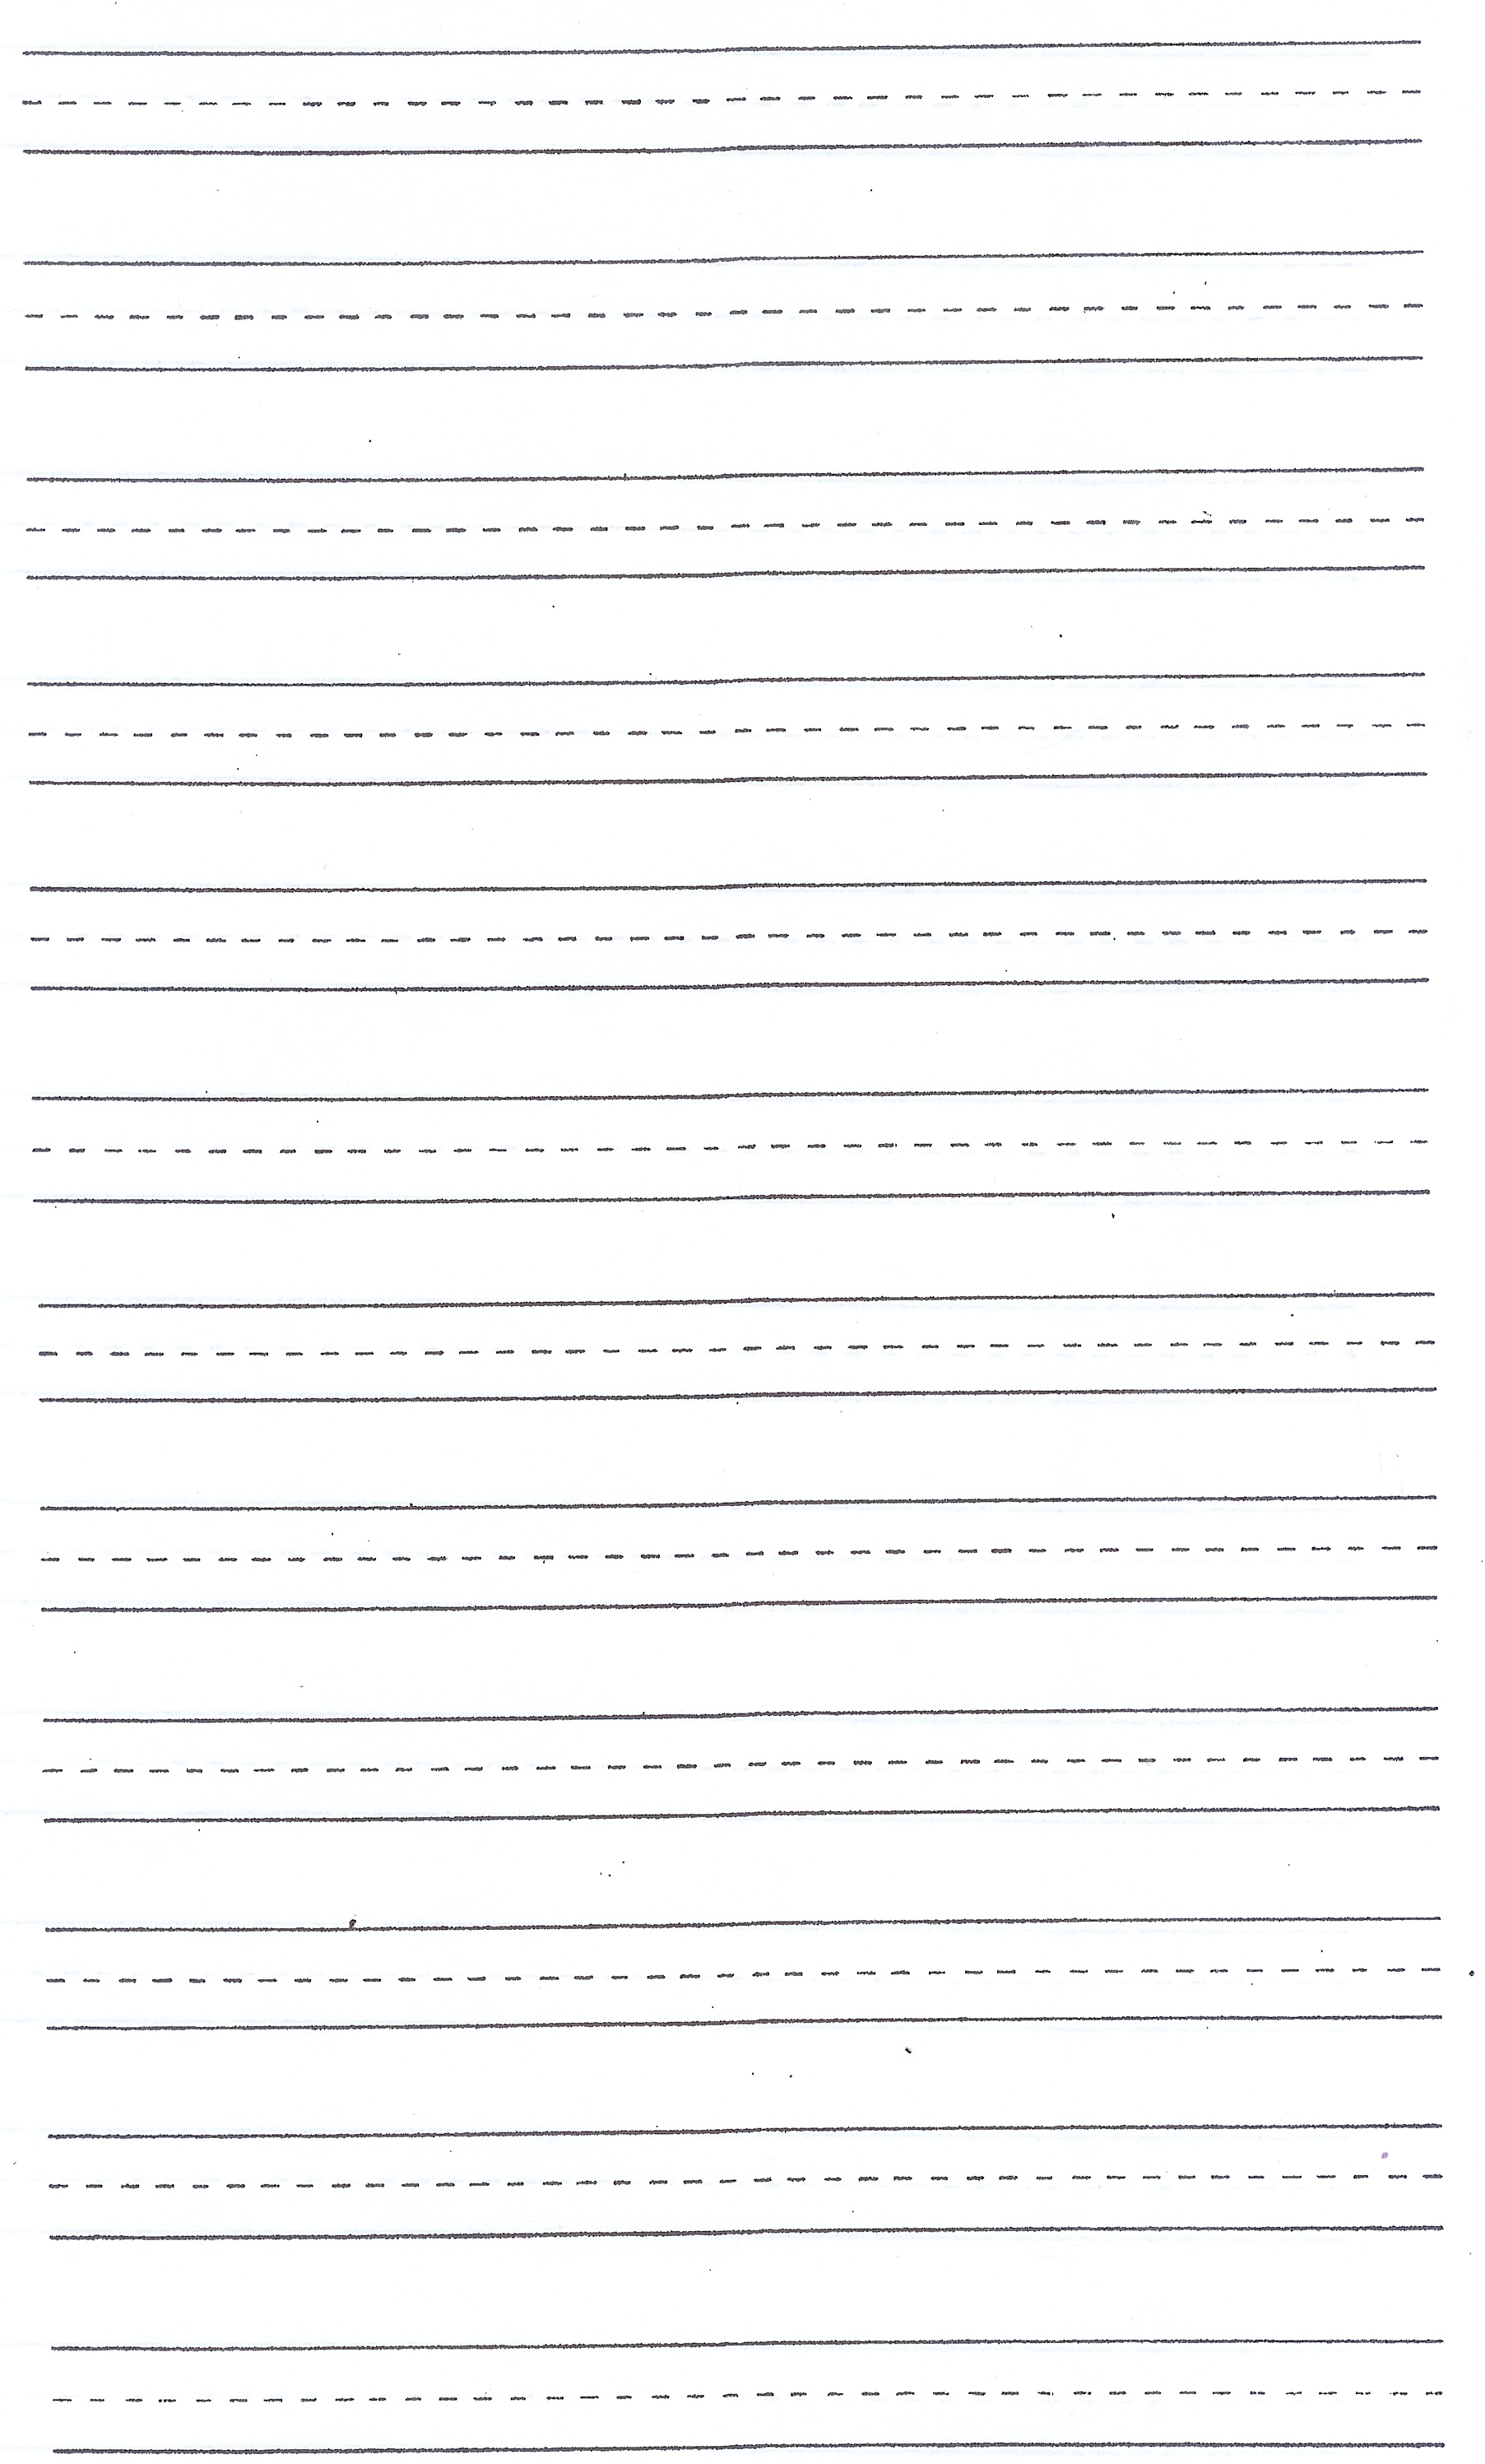 Free Handwriting Template. alphabet practice printables downloads ...